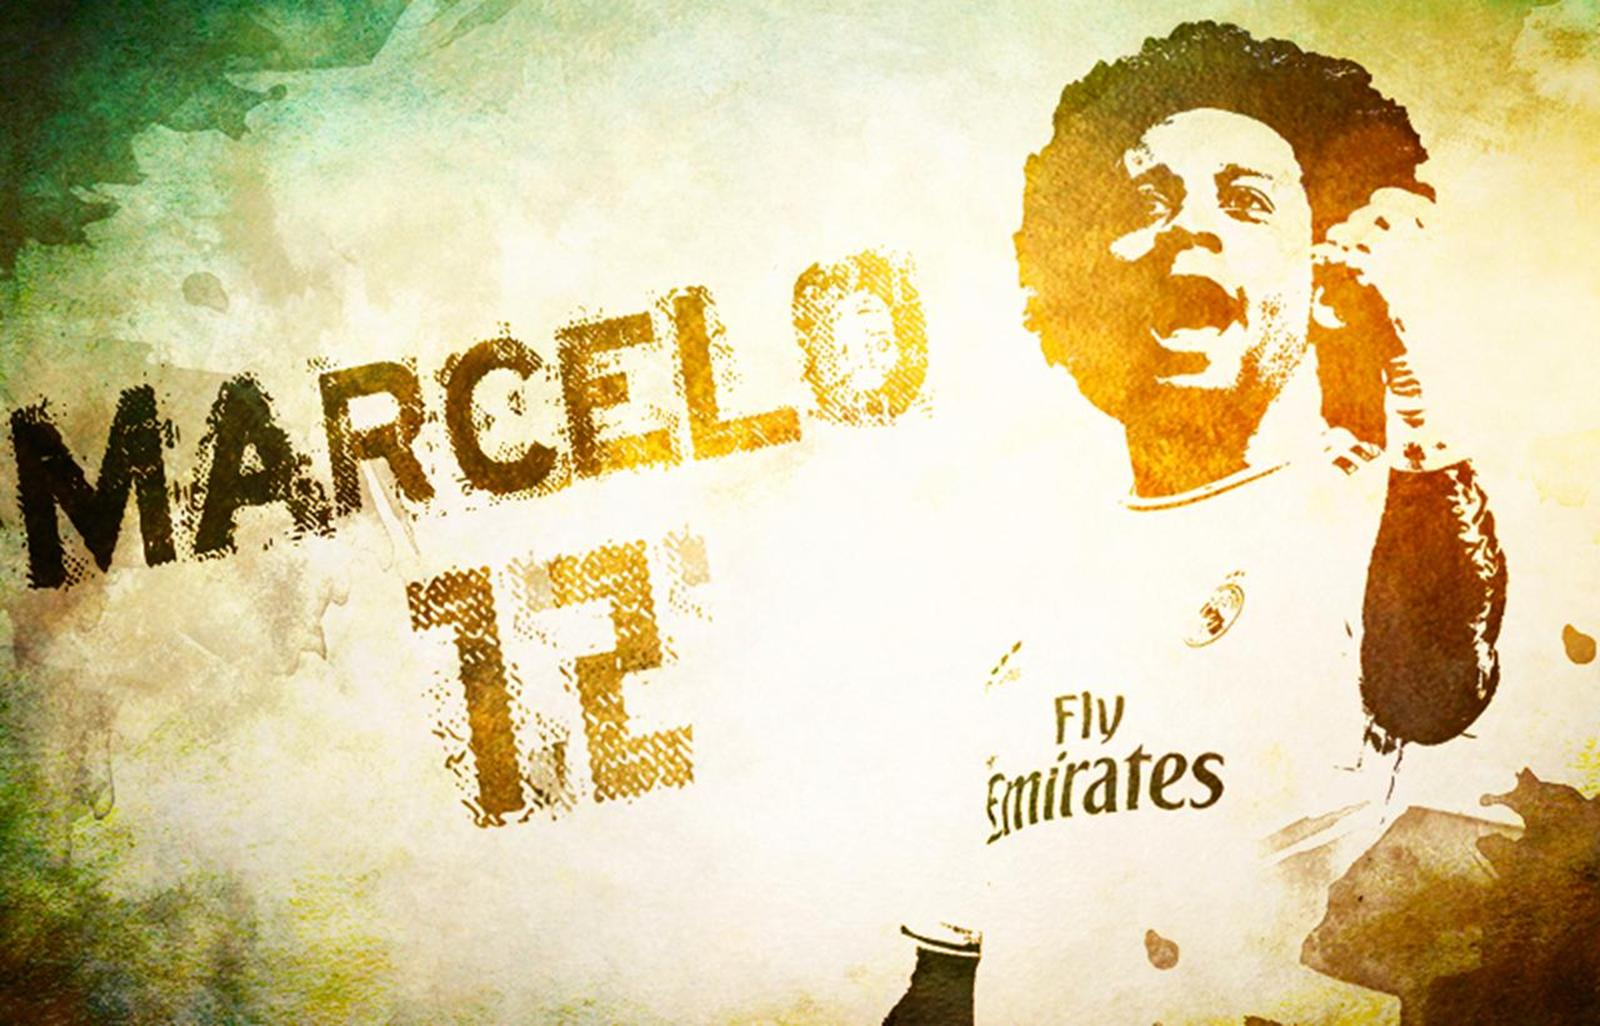 Real Madrid Wallpaper Iphone 5 Marcelo 12 Wallpaper And Background Image 1600x1026 Id